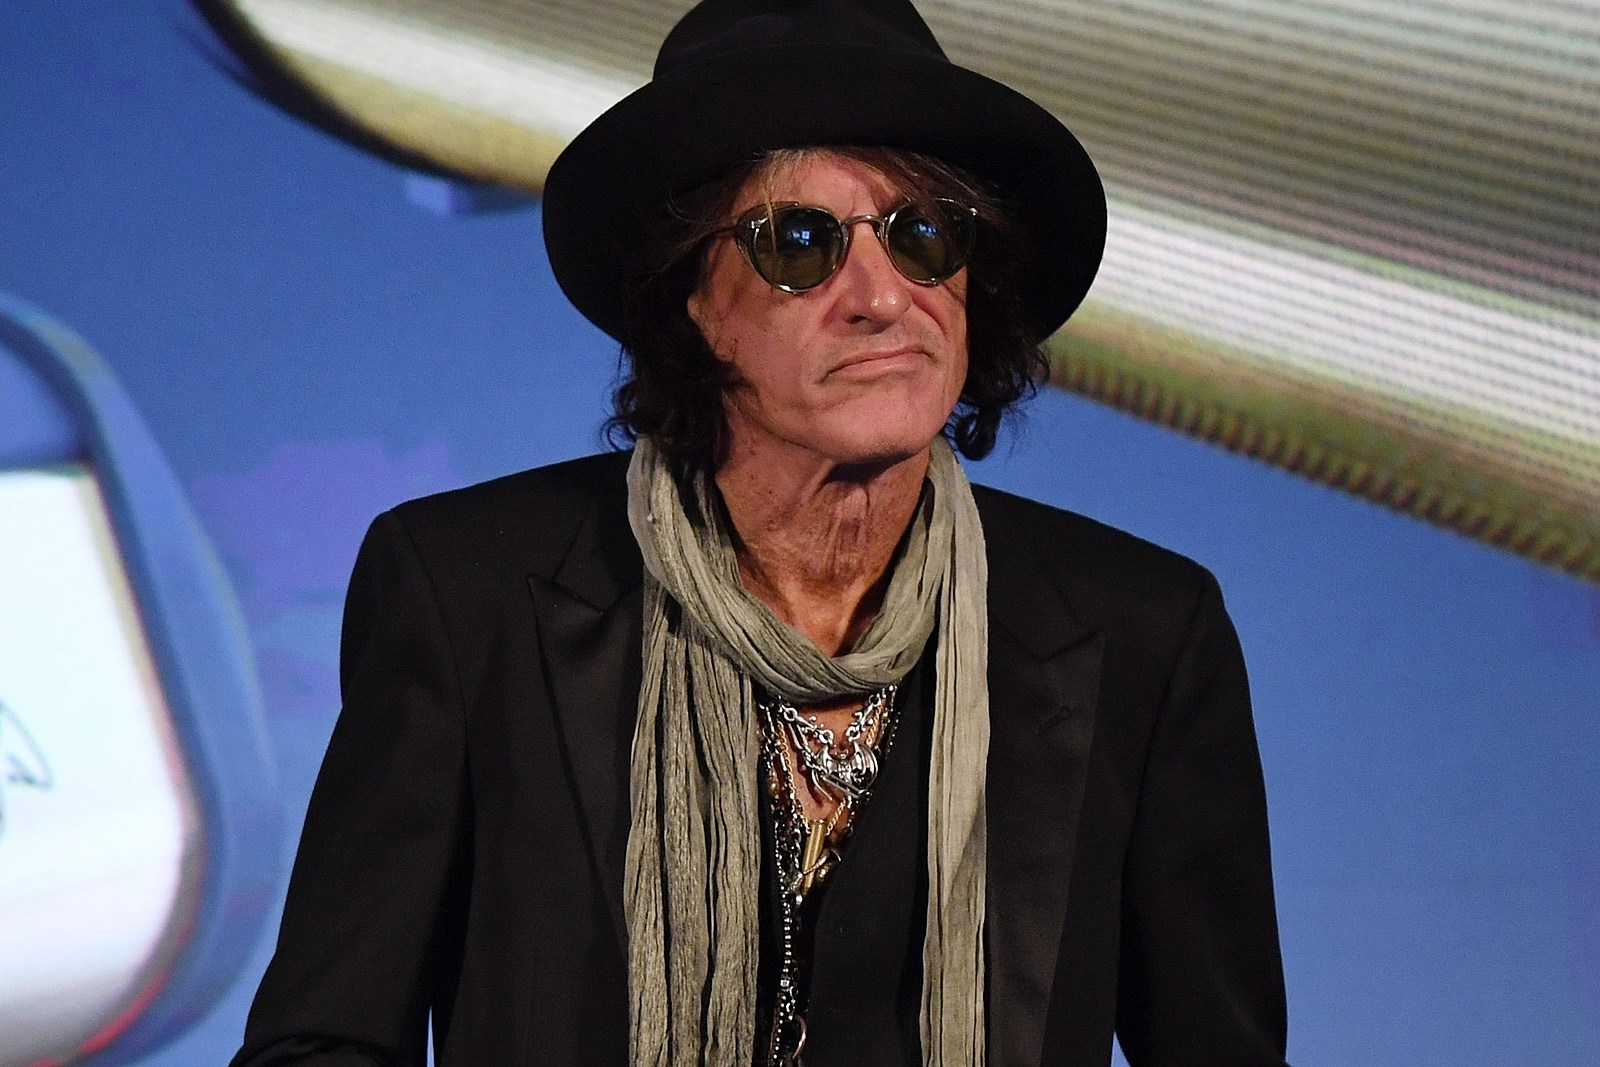 Joe Perry Assembles All-Star Band for Solo Dates